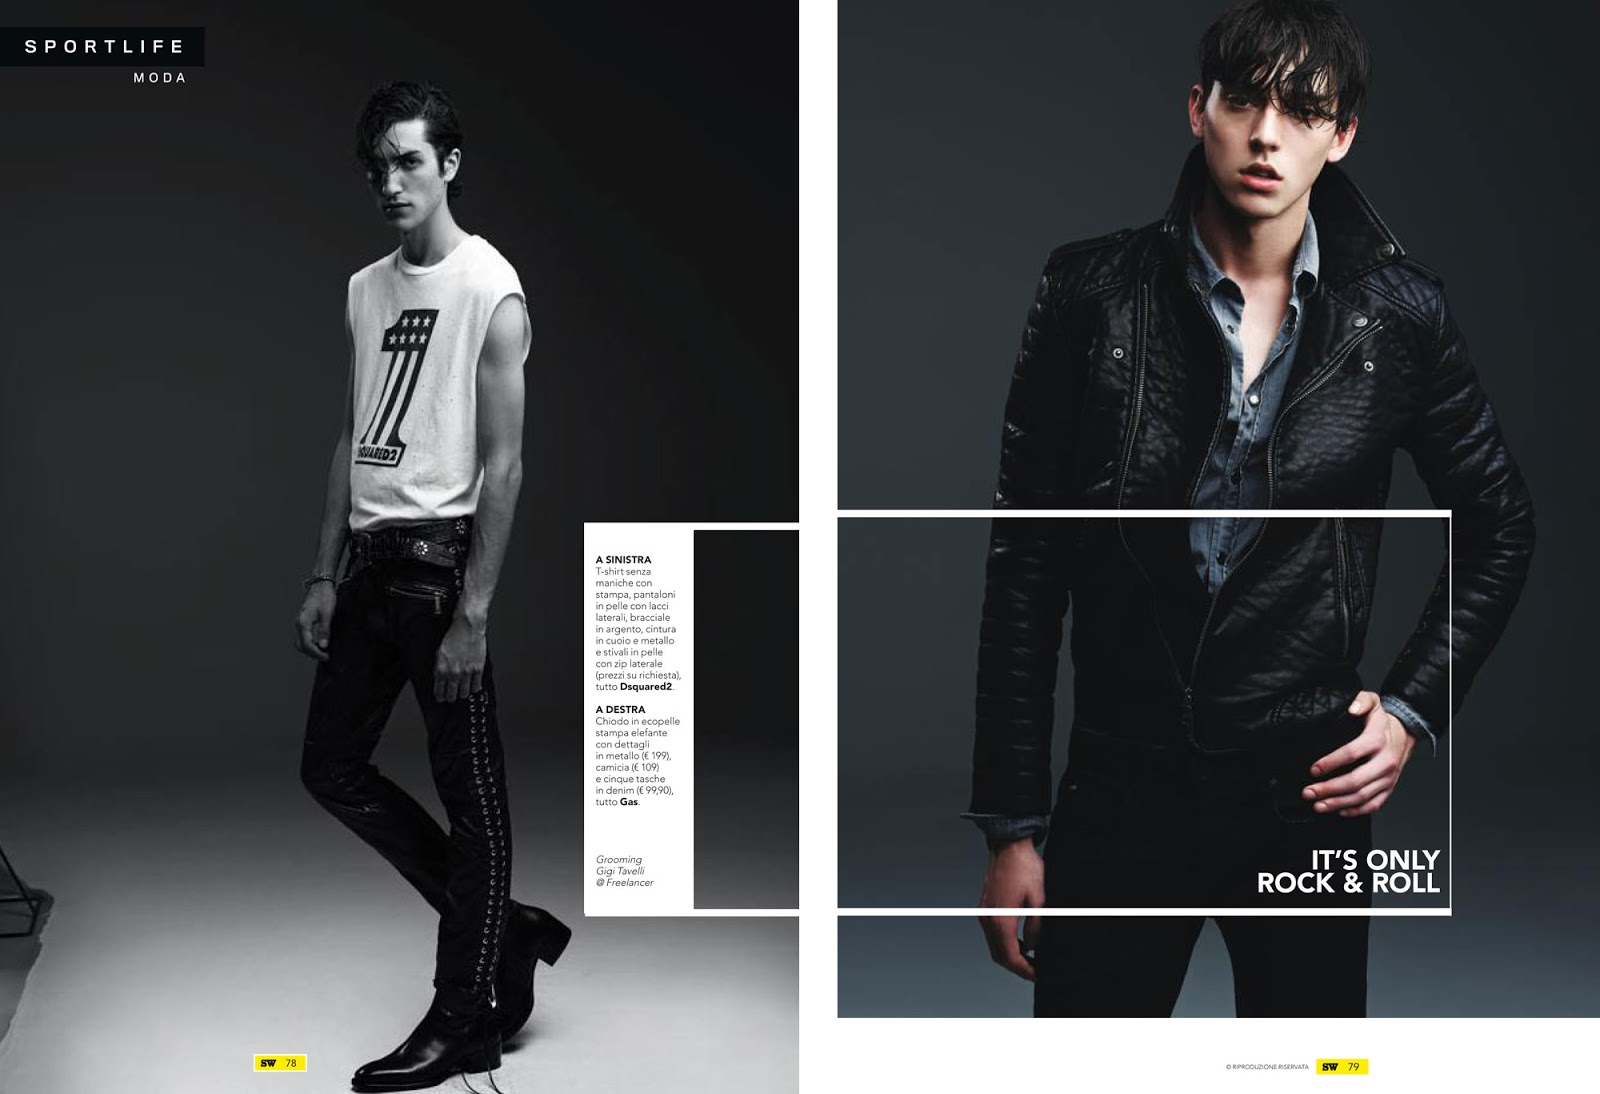 It's Only Rock & Roll: Sportweek Features Cool Leathers